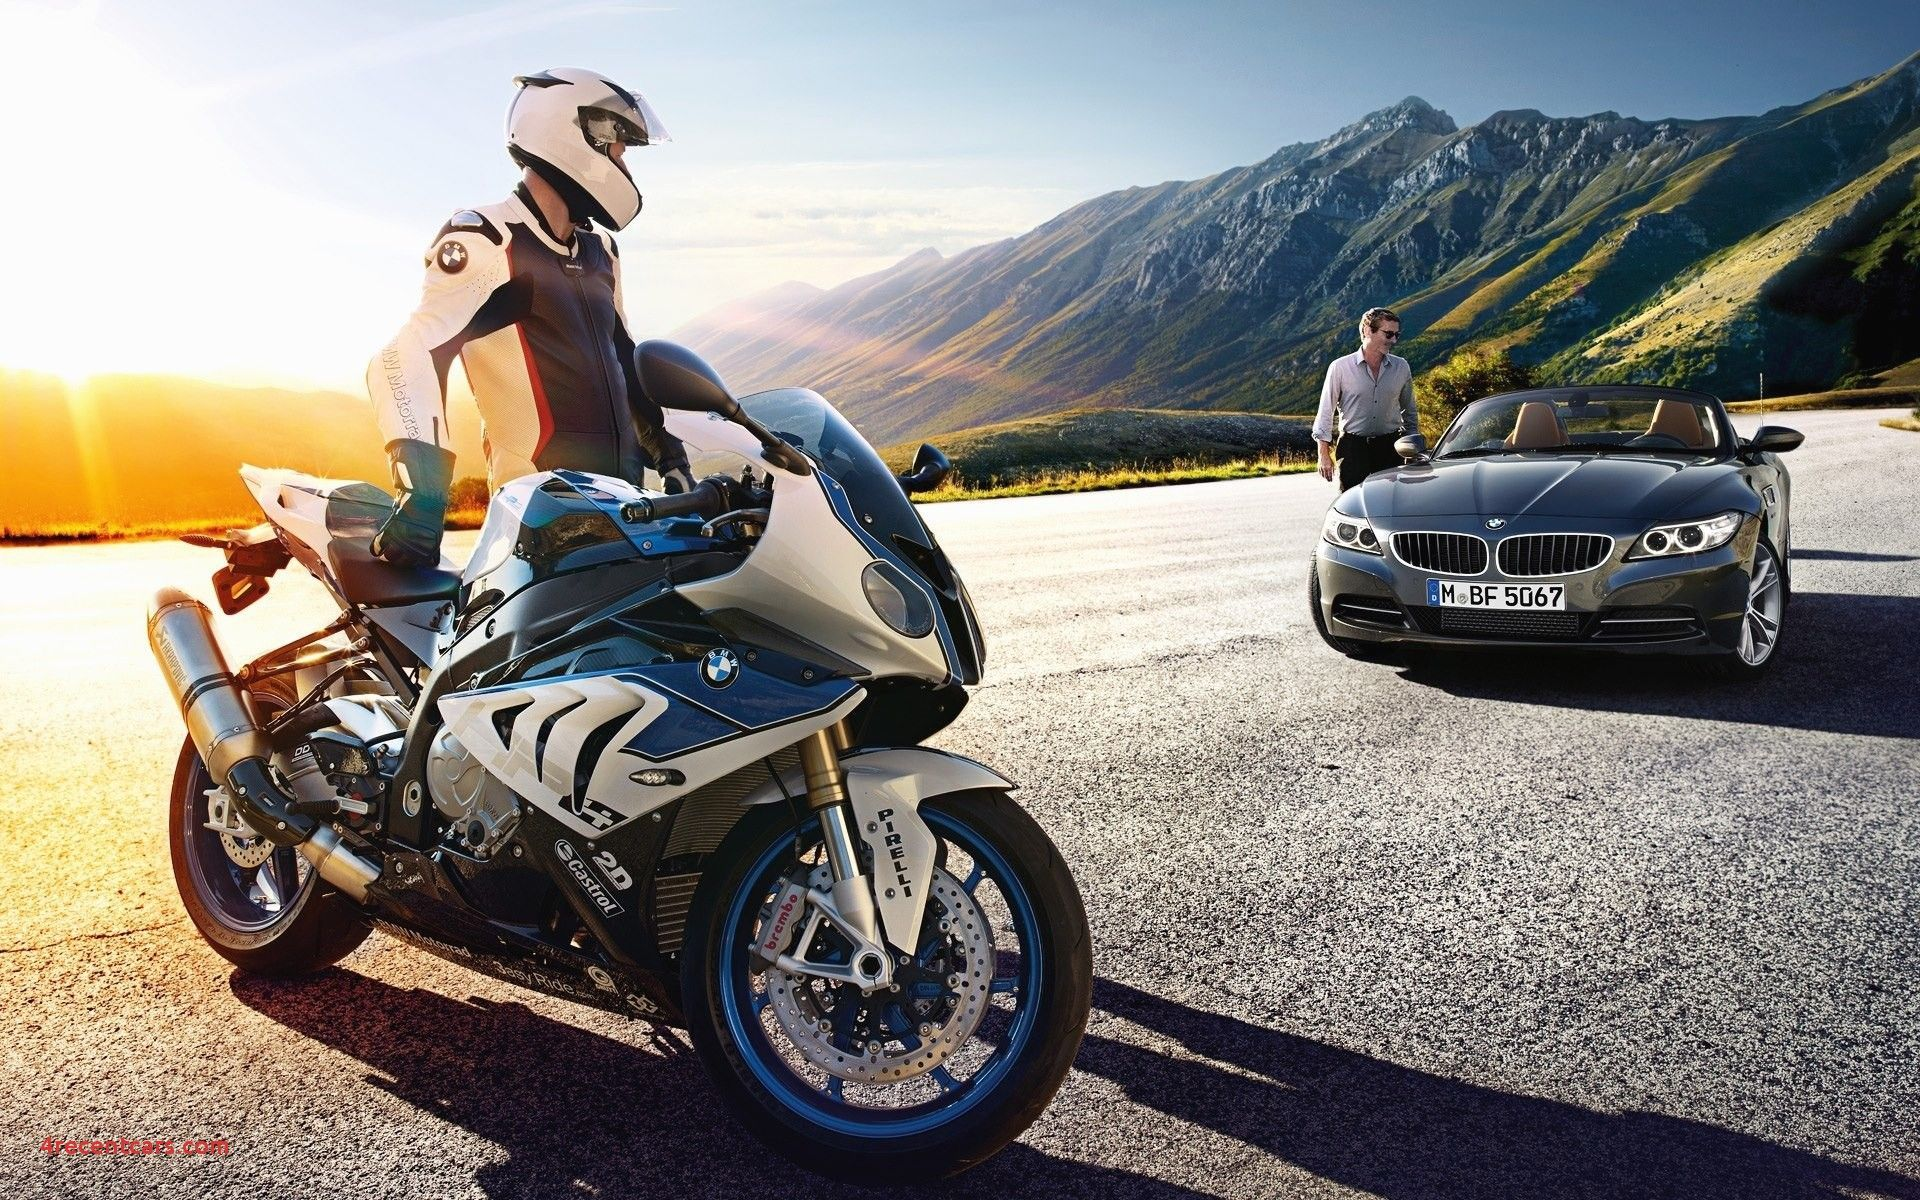 BMW Motorcycle Wallpapers - Top Free BMW Motorcycle ...